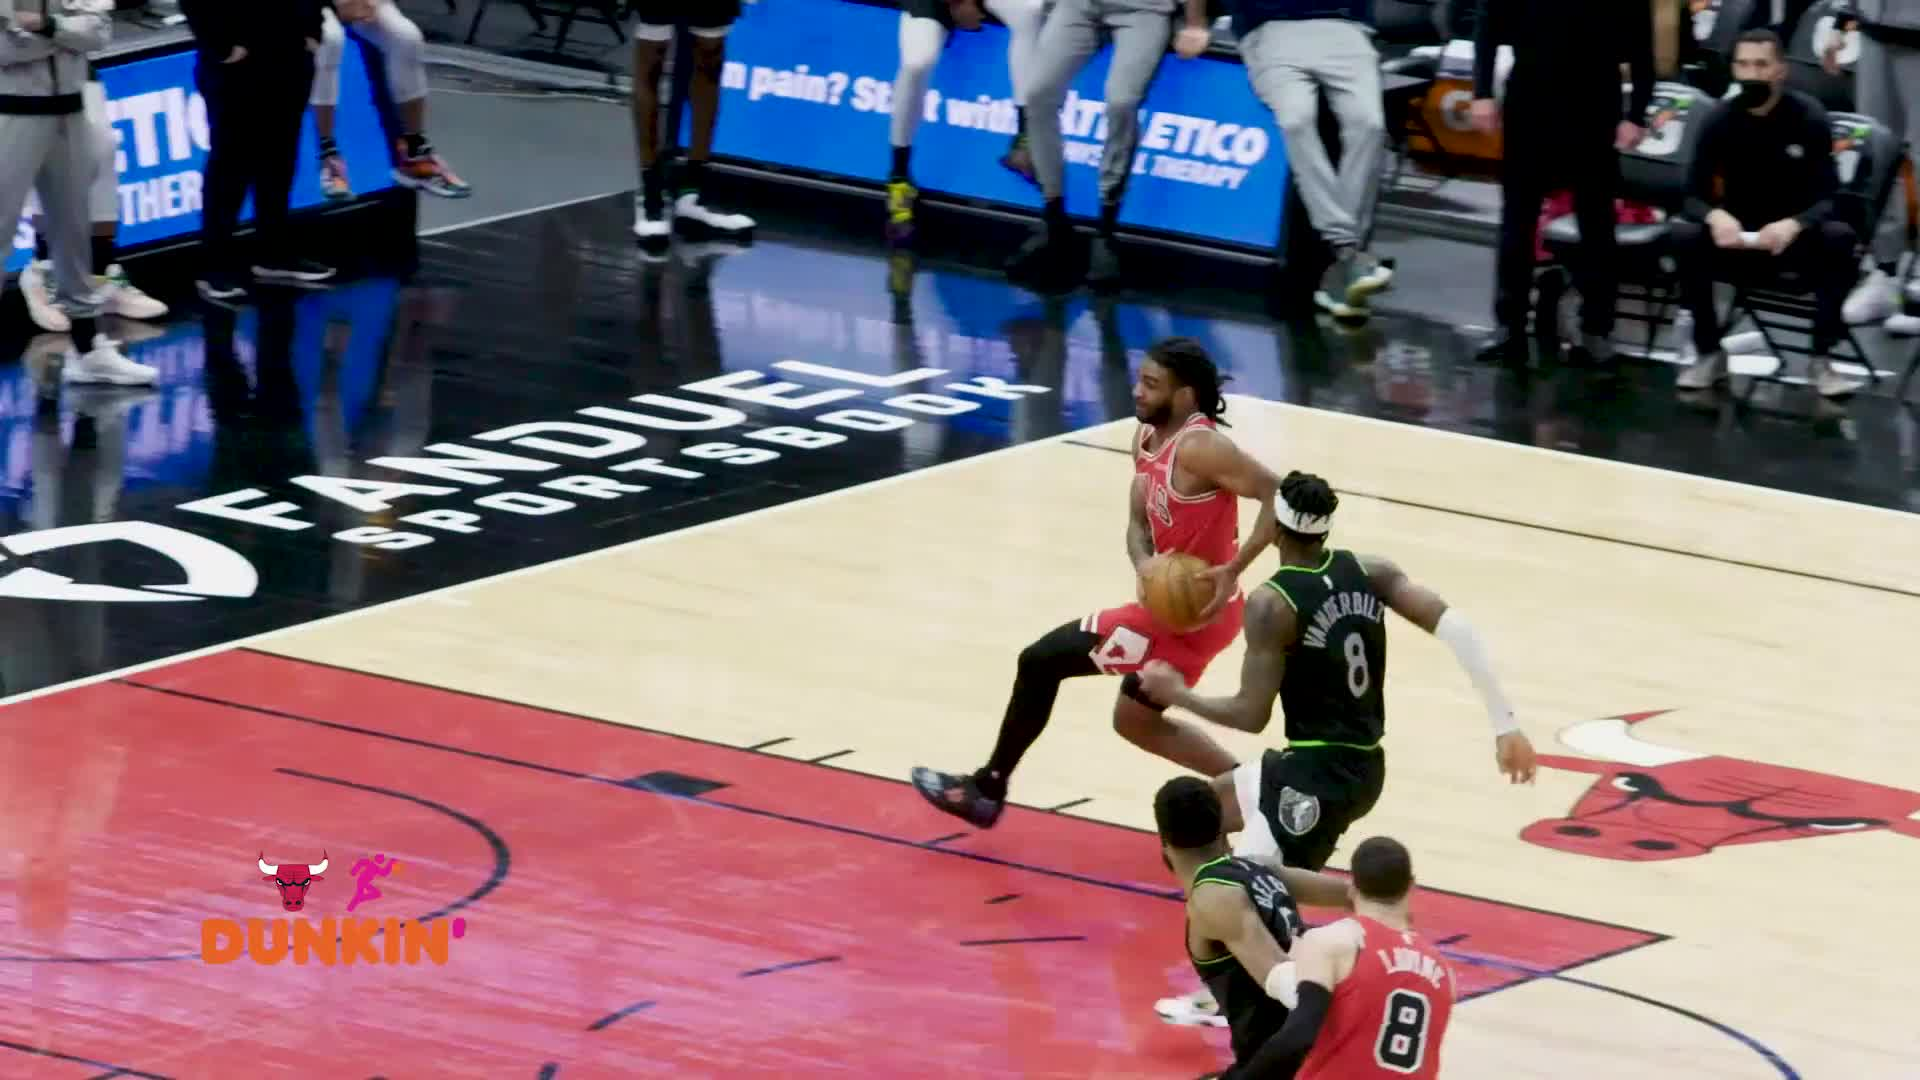 Dunk of the Week - 3.1.21